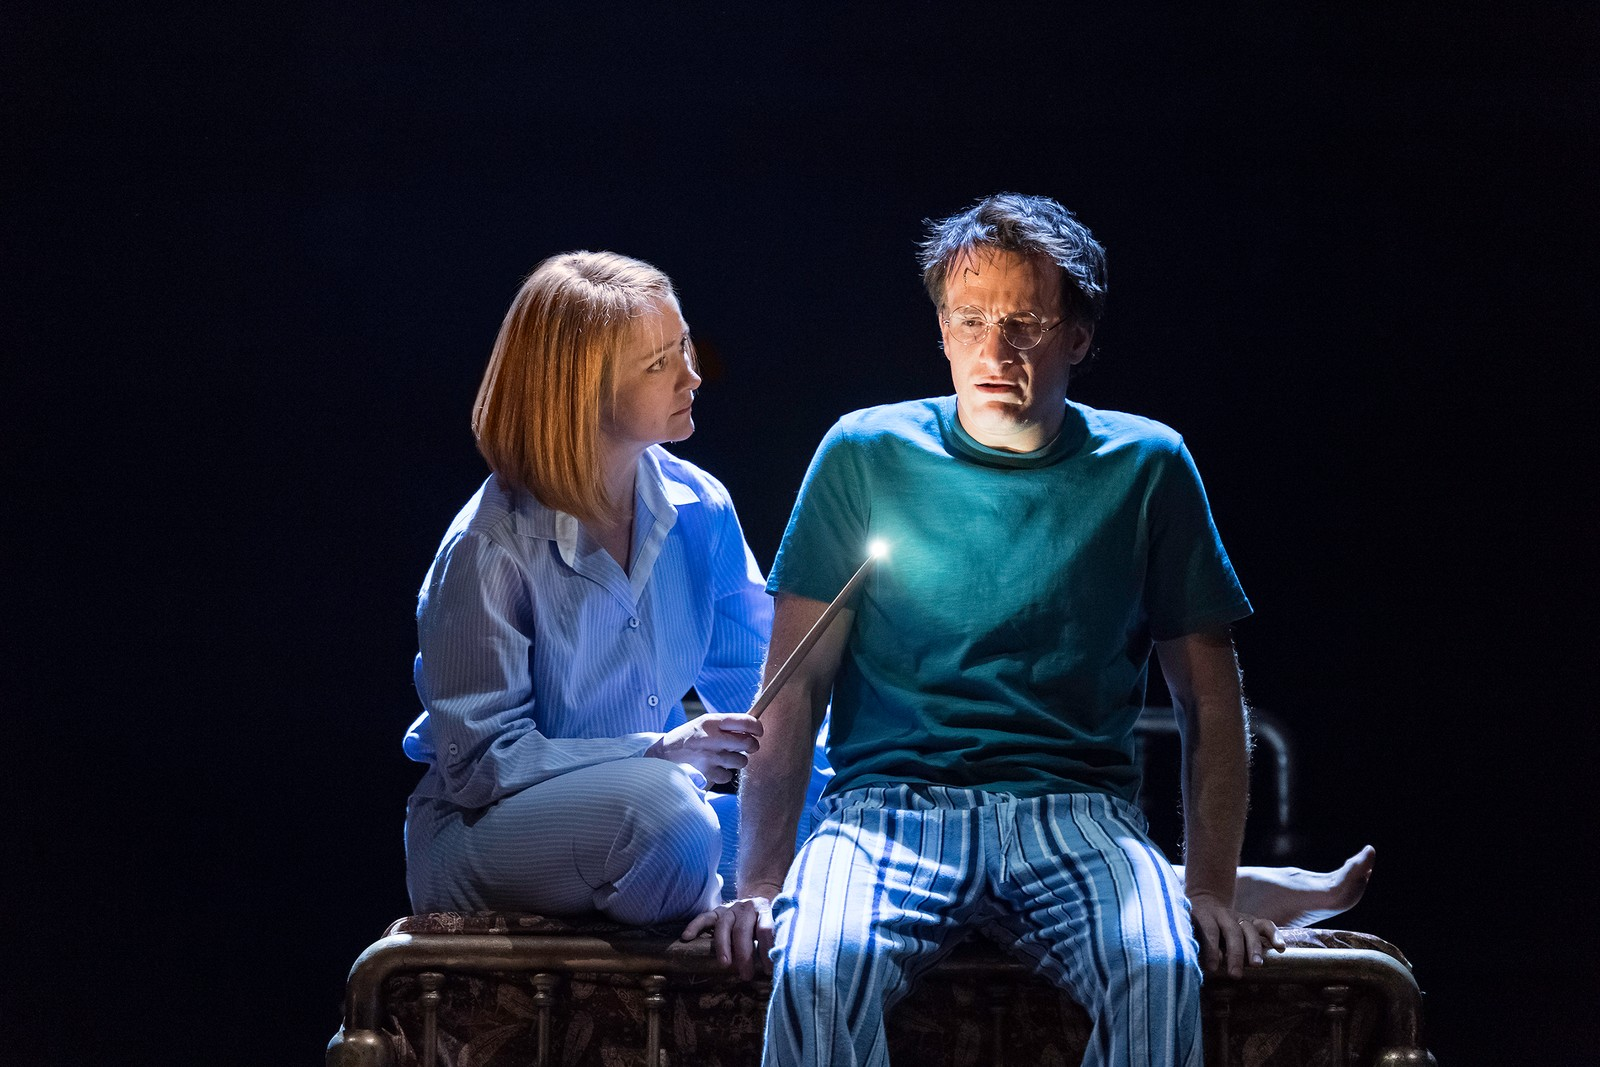 VOKSNE TROLLMENN: I «Harry Potter and the Cursed Child» møter publikum en voksen Harry Potter, spilt av Jamie Parker. Her sammen med Poppy Miller i rollen som Gulla Potter.